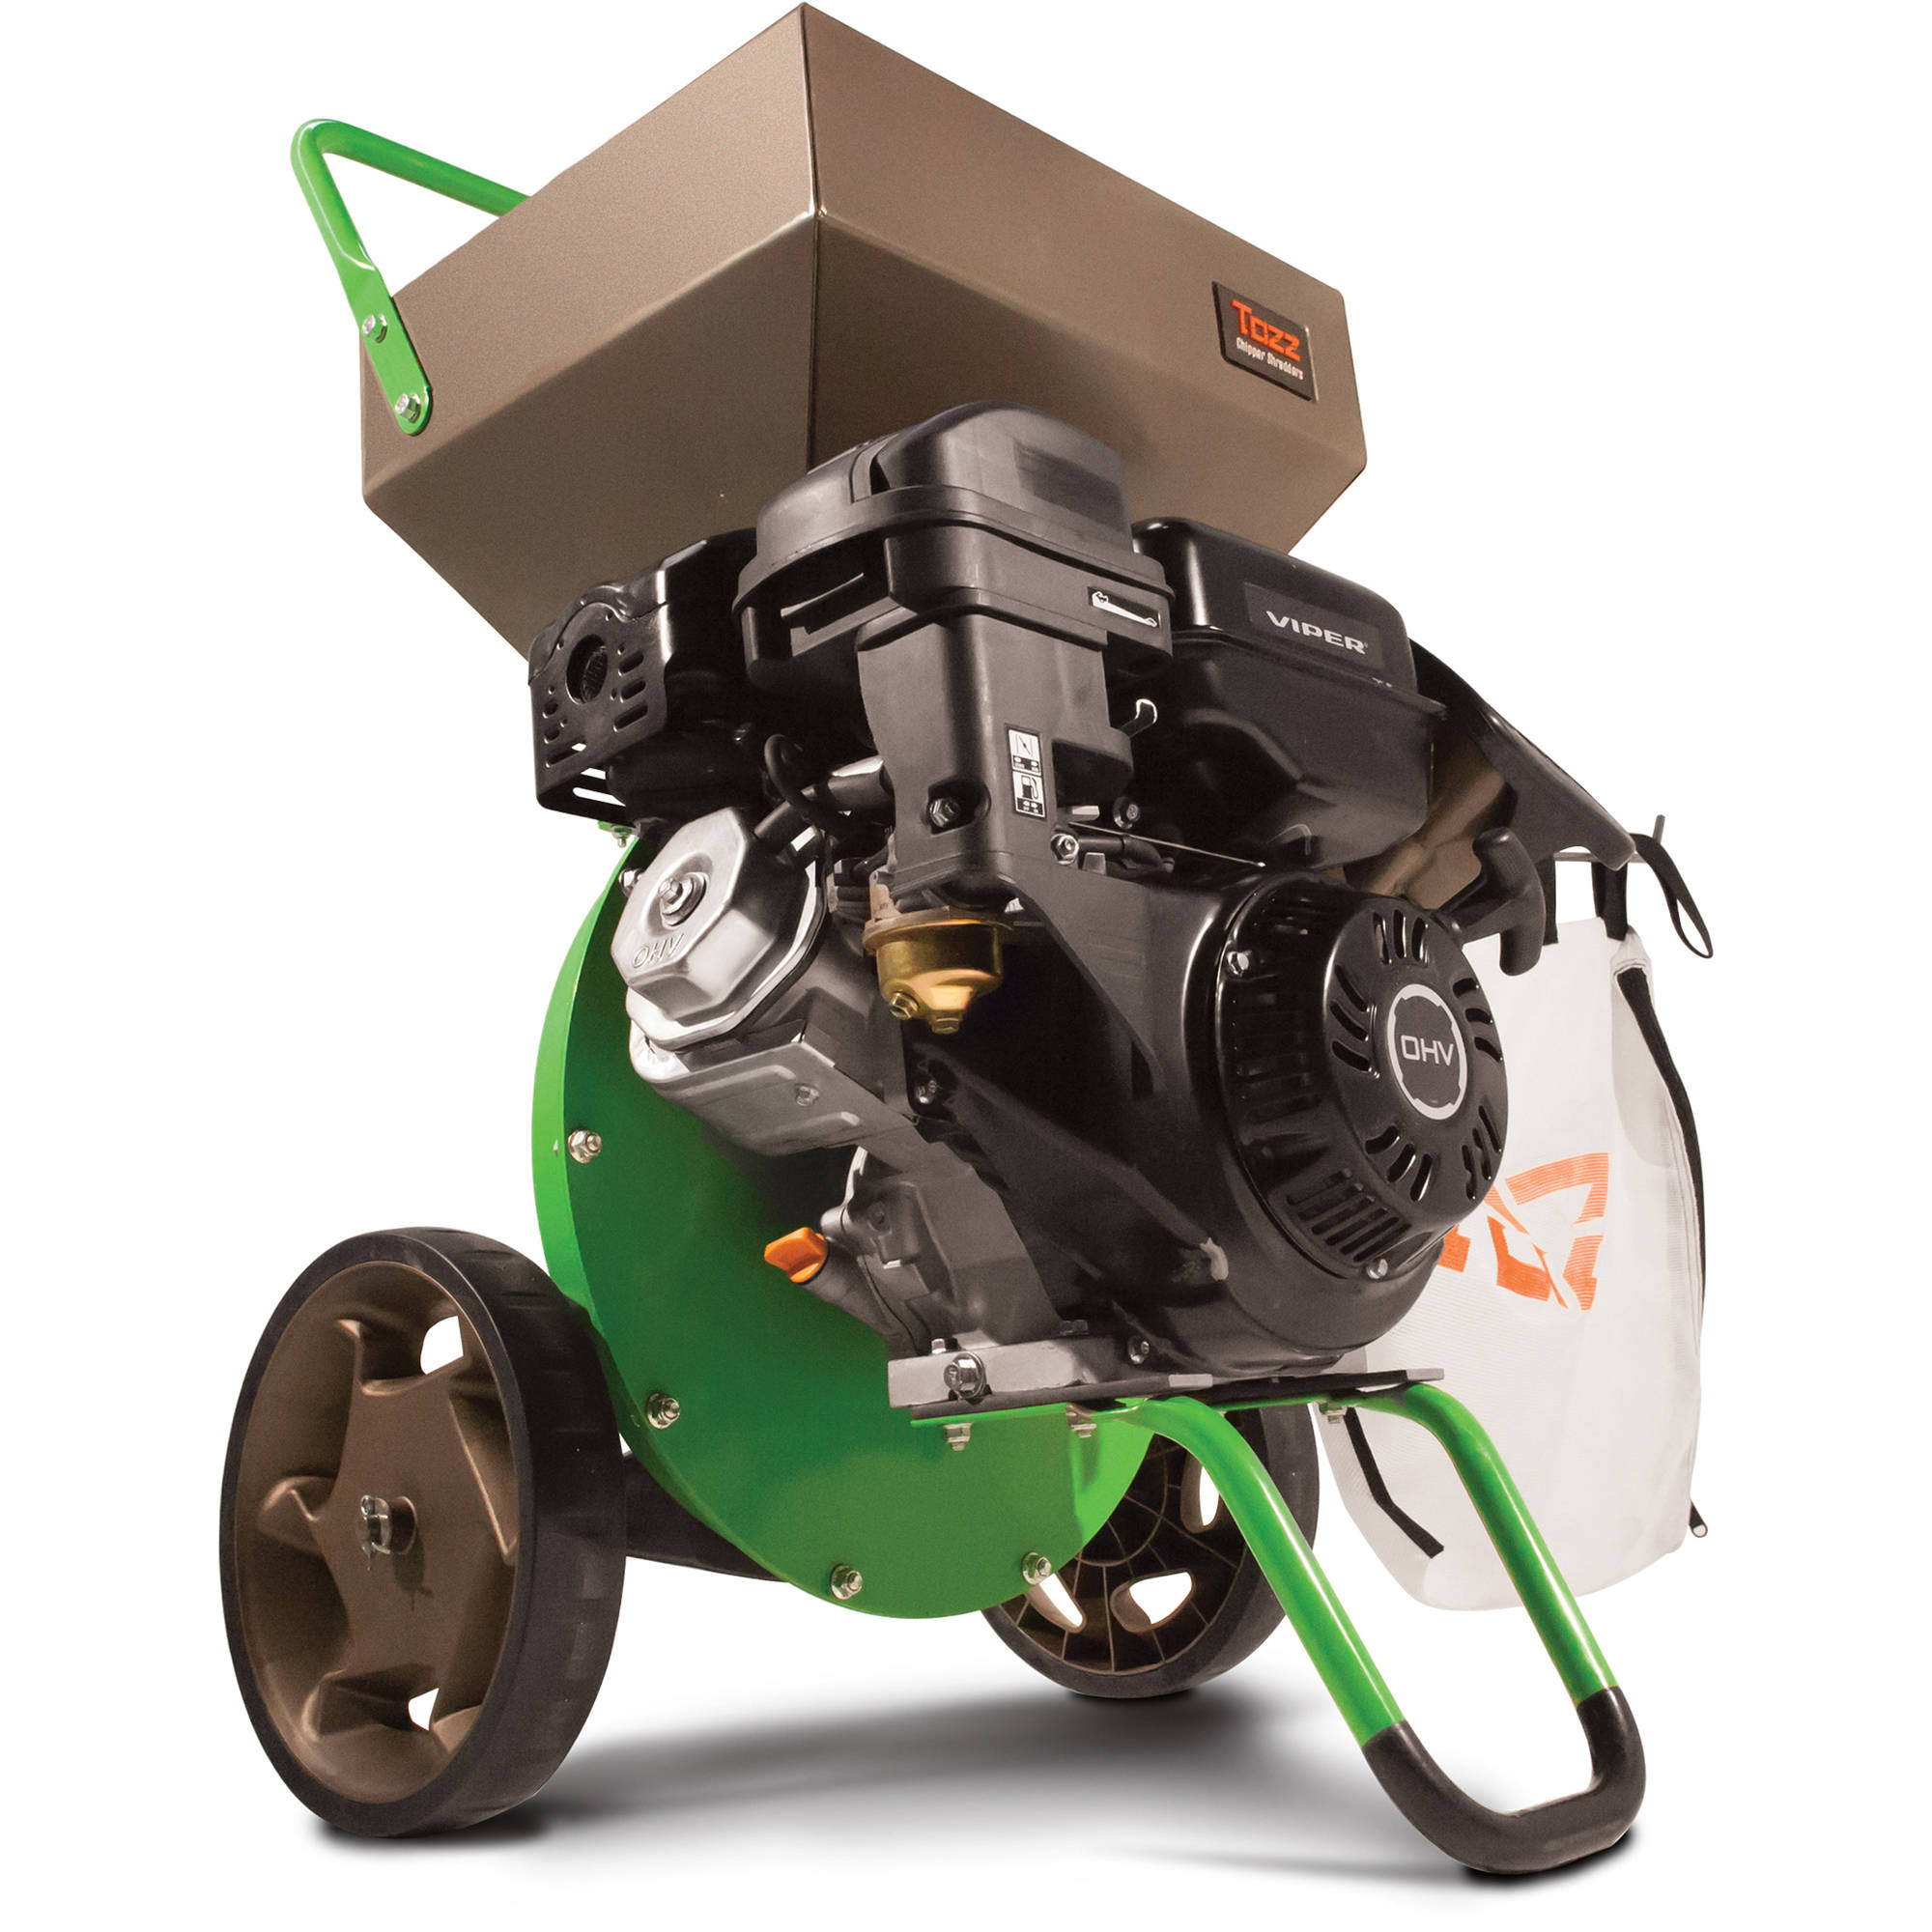 Tazz Chipper Shredders K33 Chipper Shredder with 301cc Viper Engine, Green